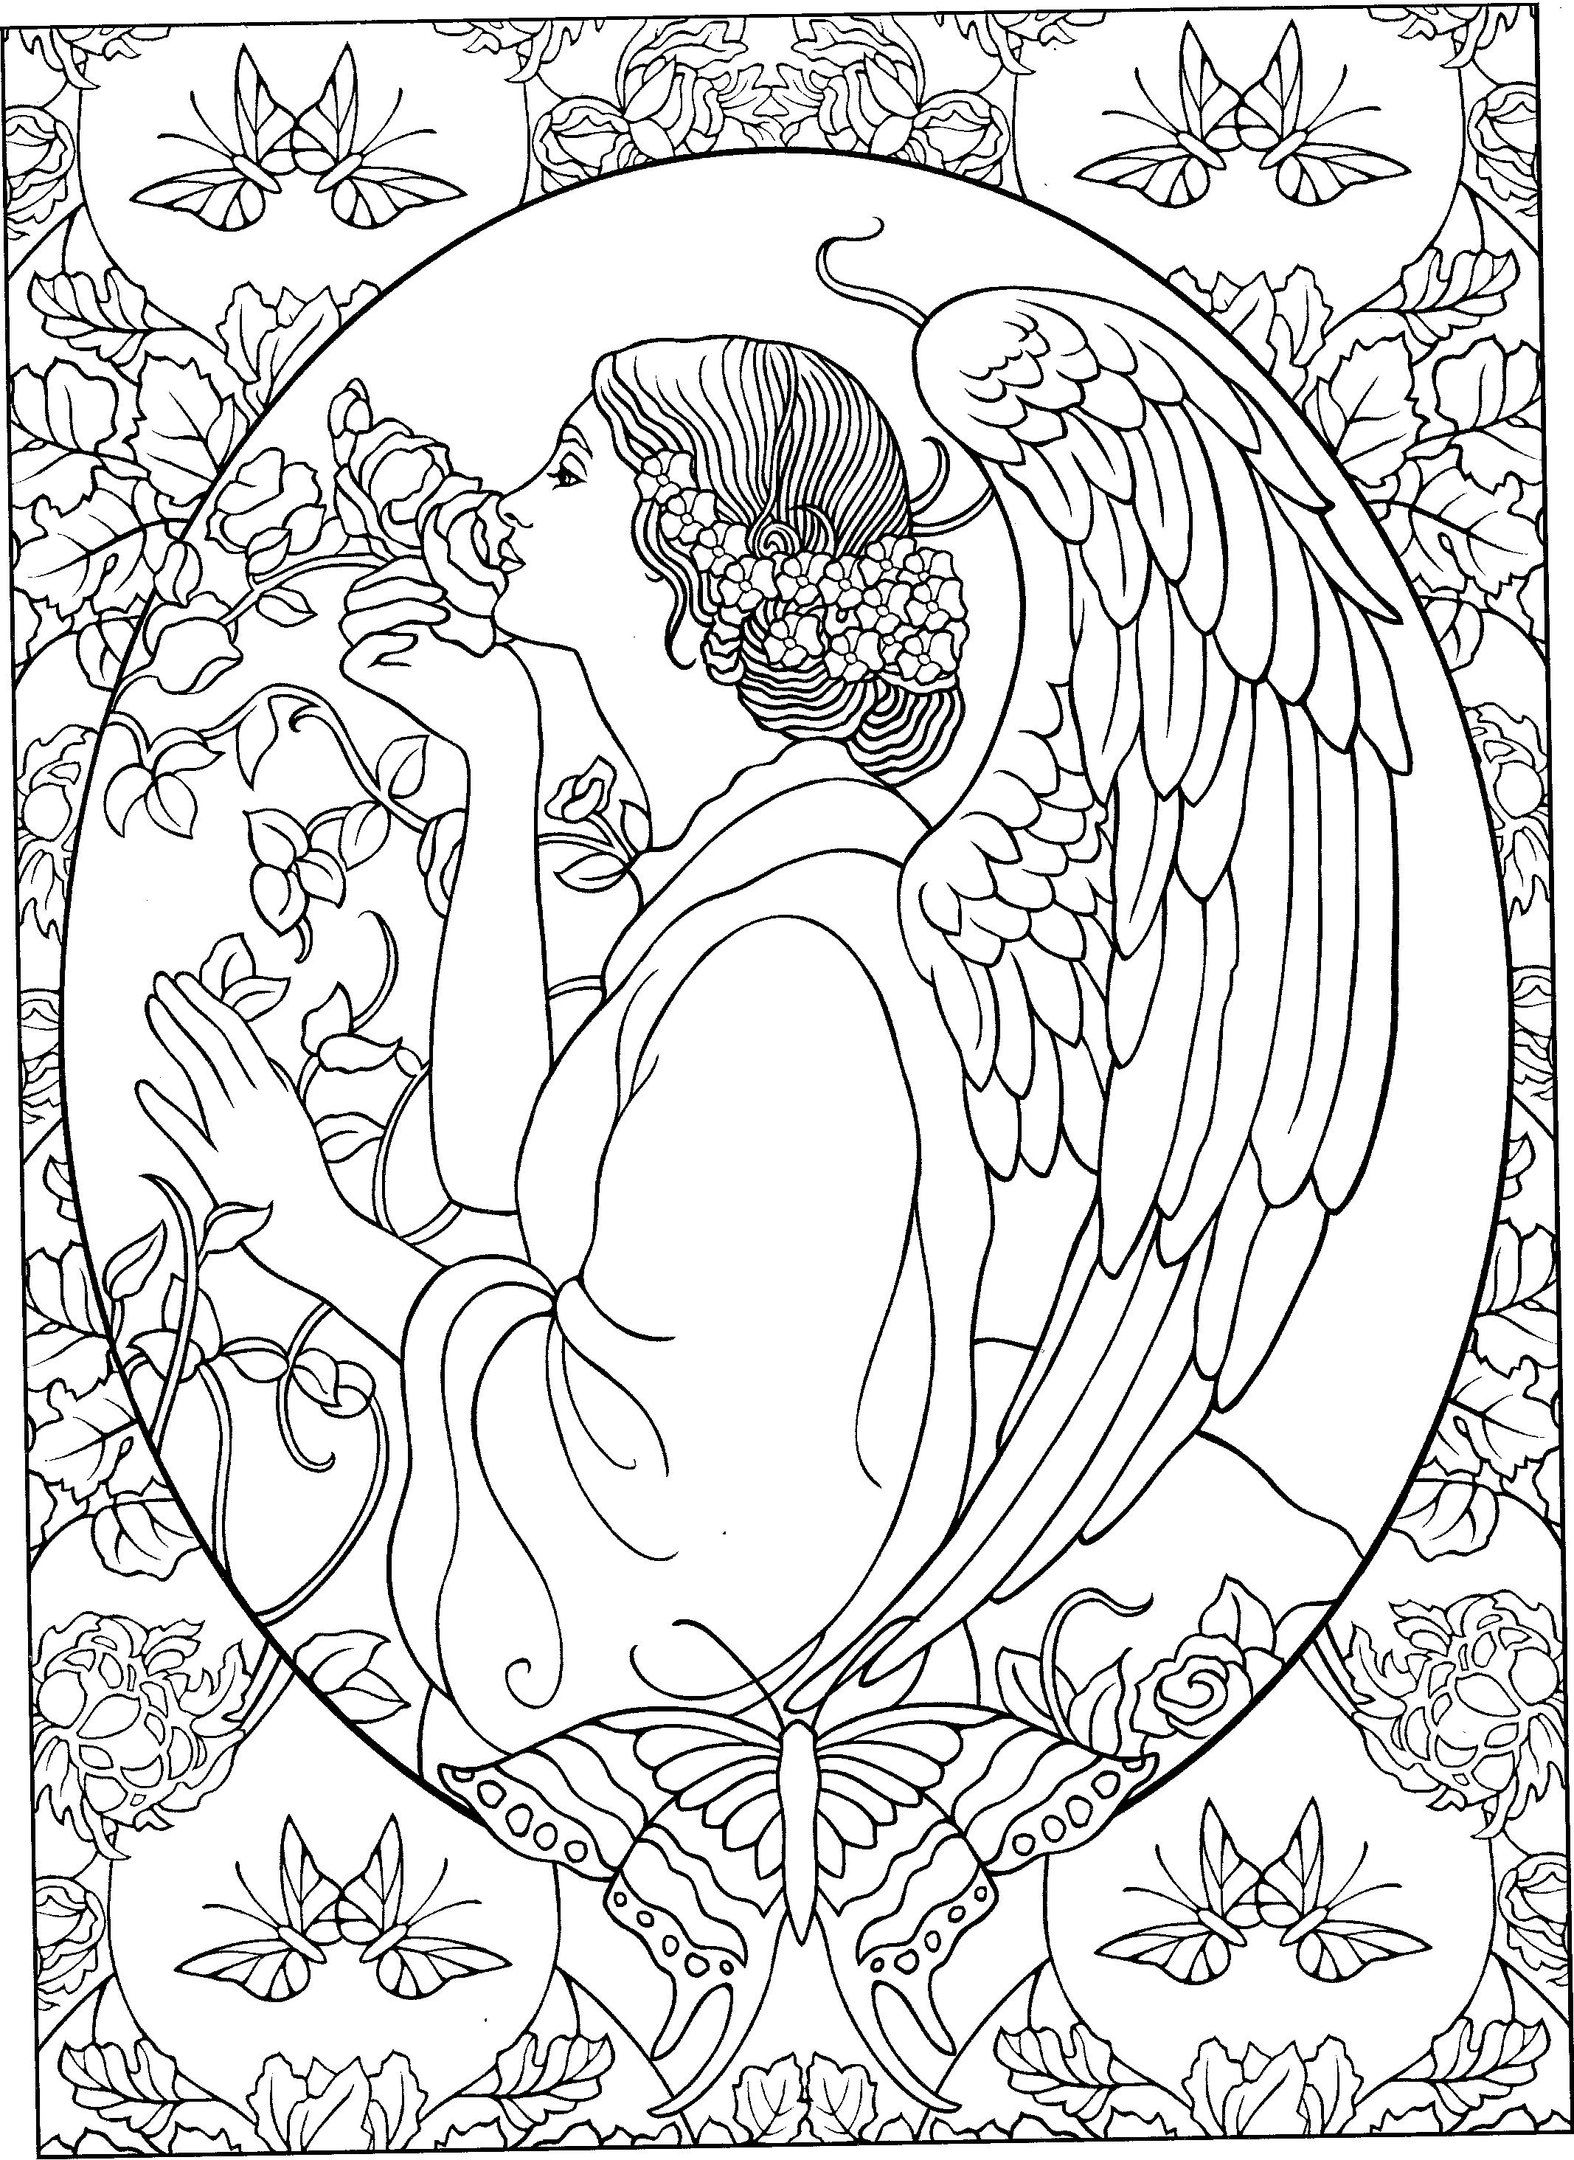 Irvtzg7ndjs Jpg 1574 2160 Angel Coloring Pages Fairy Coloring Pages Christian Coloring